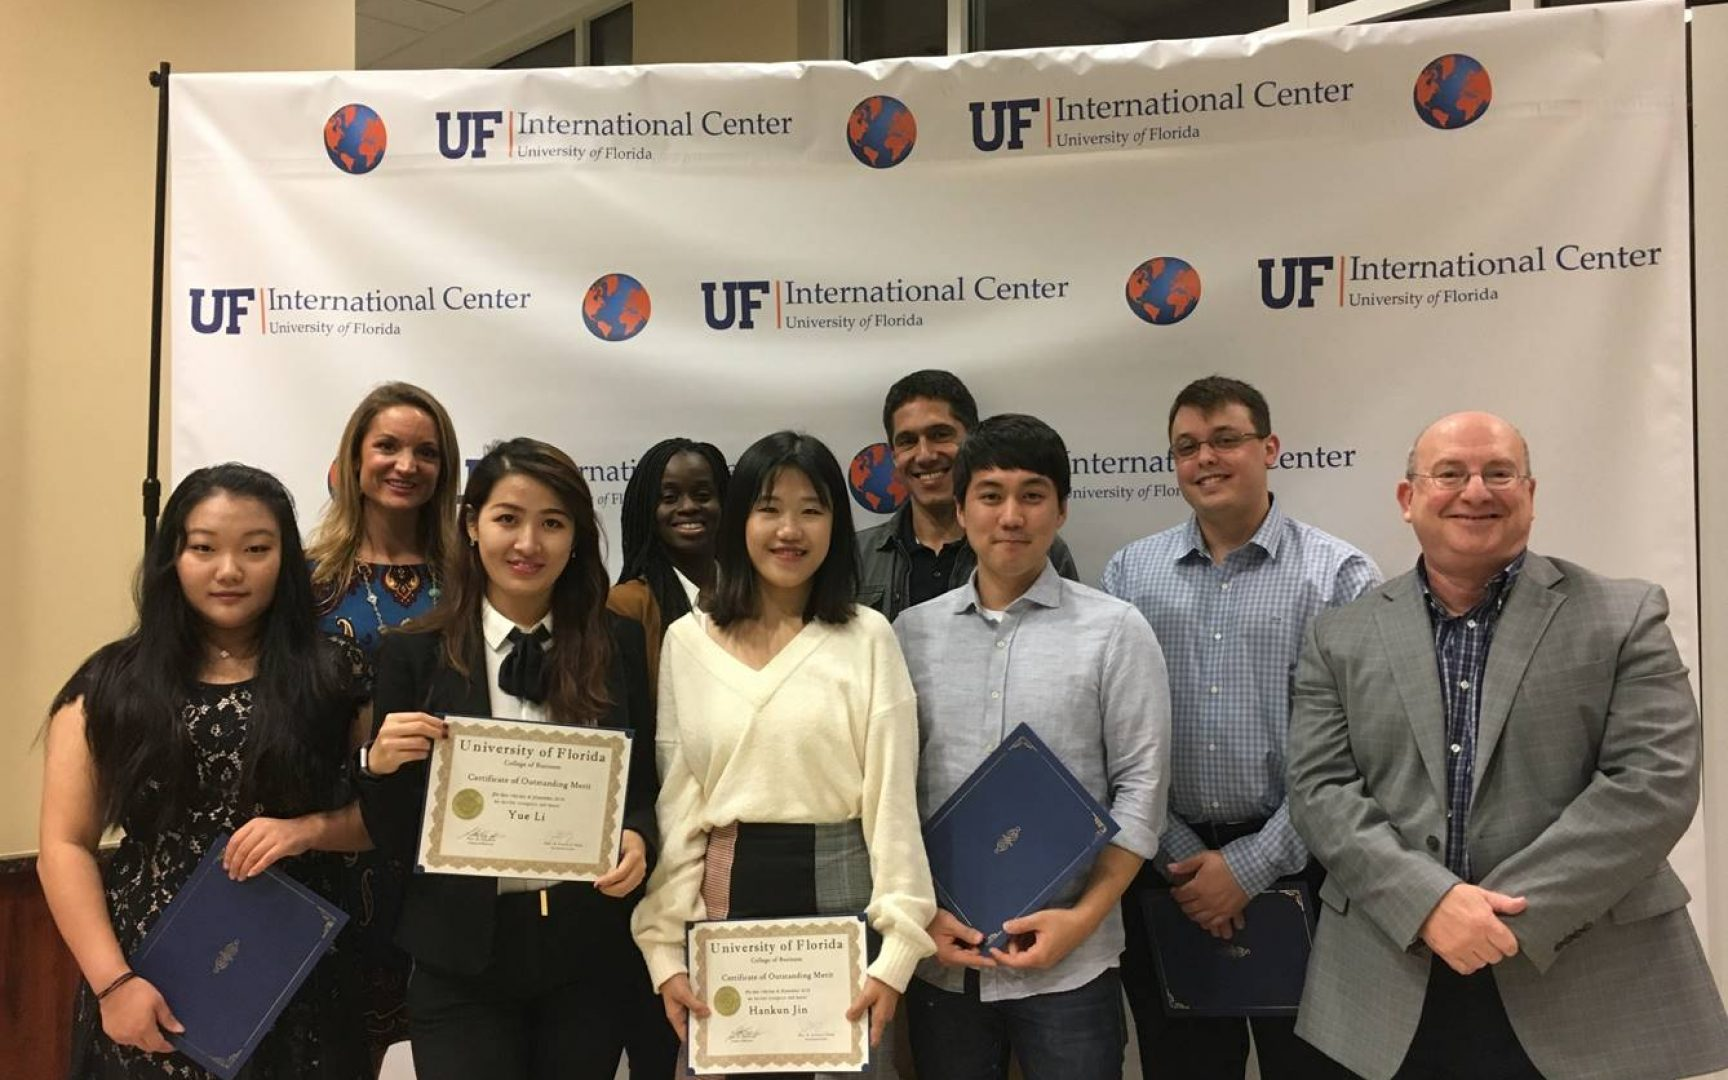 From left to right: Xinyi Pan (BSAc), nominated by Georganne Watson; Yue Li (BSBA), nominated by Jason Ward (not pictured); Hankun Jin (MIB, MS-ISOM), nominated by Ana Portocarrero (not pictured); Sang Kyu Park (Ph.D. -Marketing), nominated by Dr. Aner Sela; Bruno Pintchovski Rodriguez (MS-ISOM), nominated by Jessica Samsom; Joe Rojo, Director of International Programs Heavener School of Business.